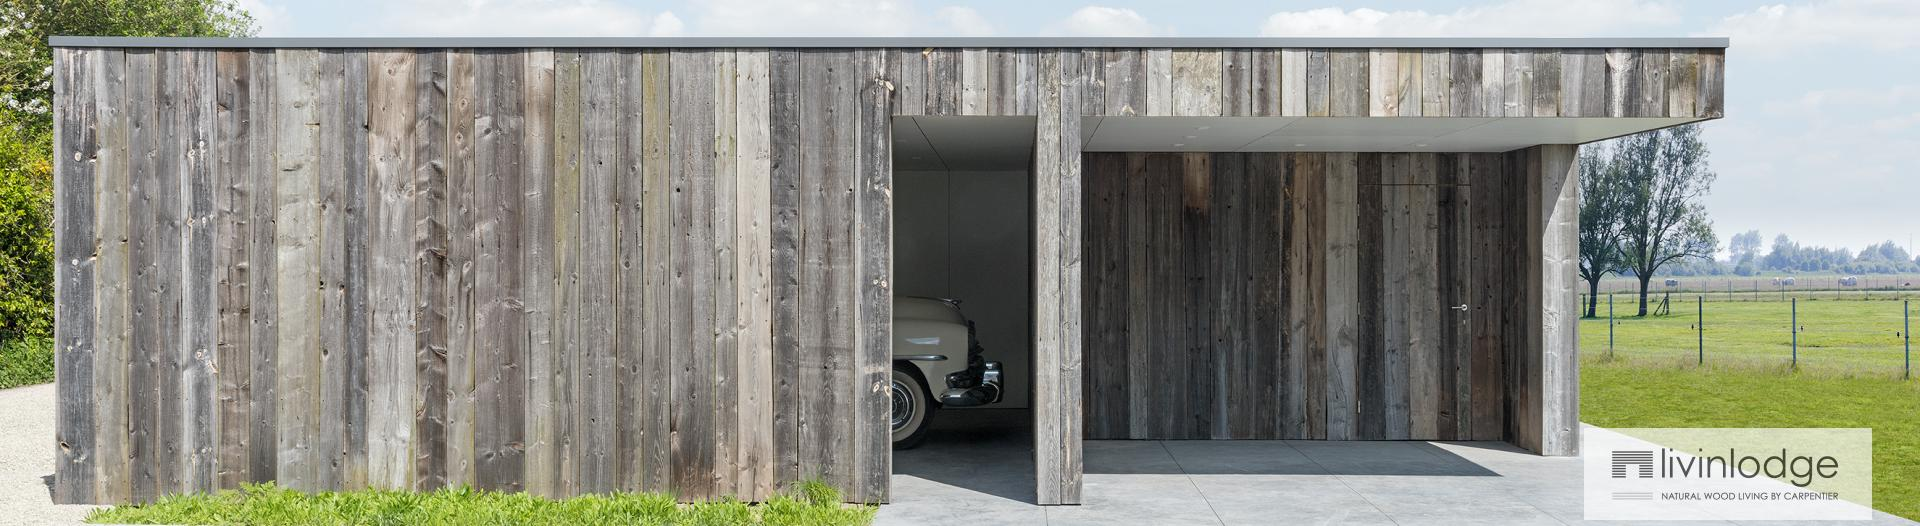 Moderne carport in hout